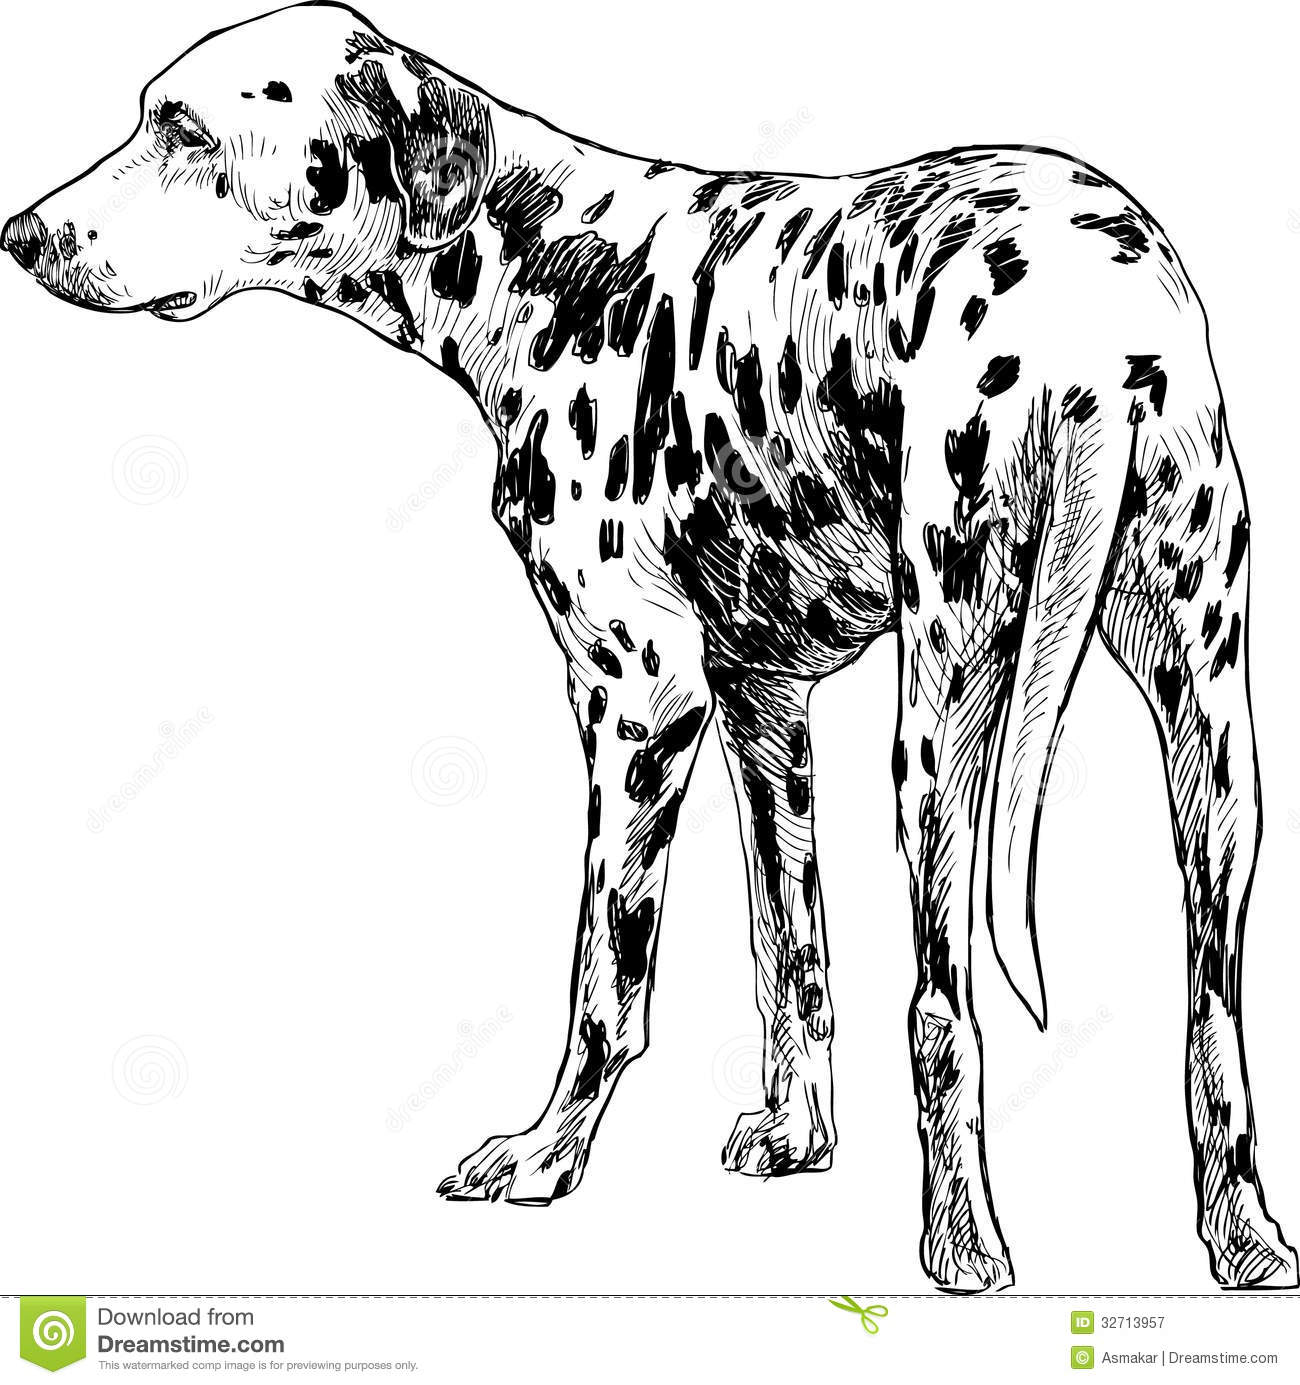 Turning Dalmatians Royalty Free Stock Photography